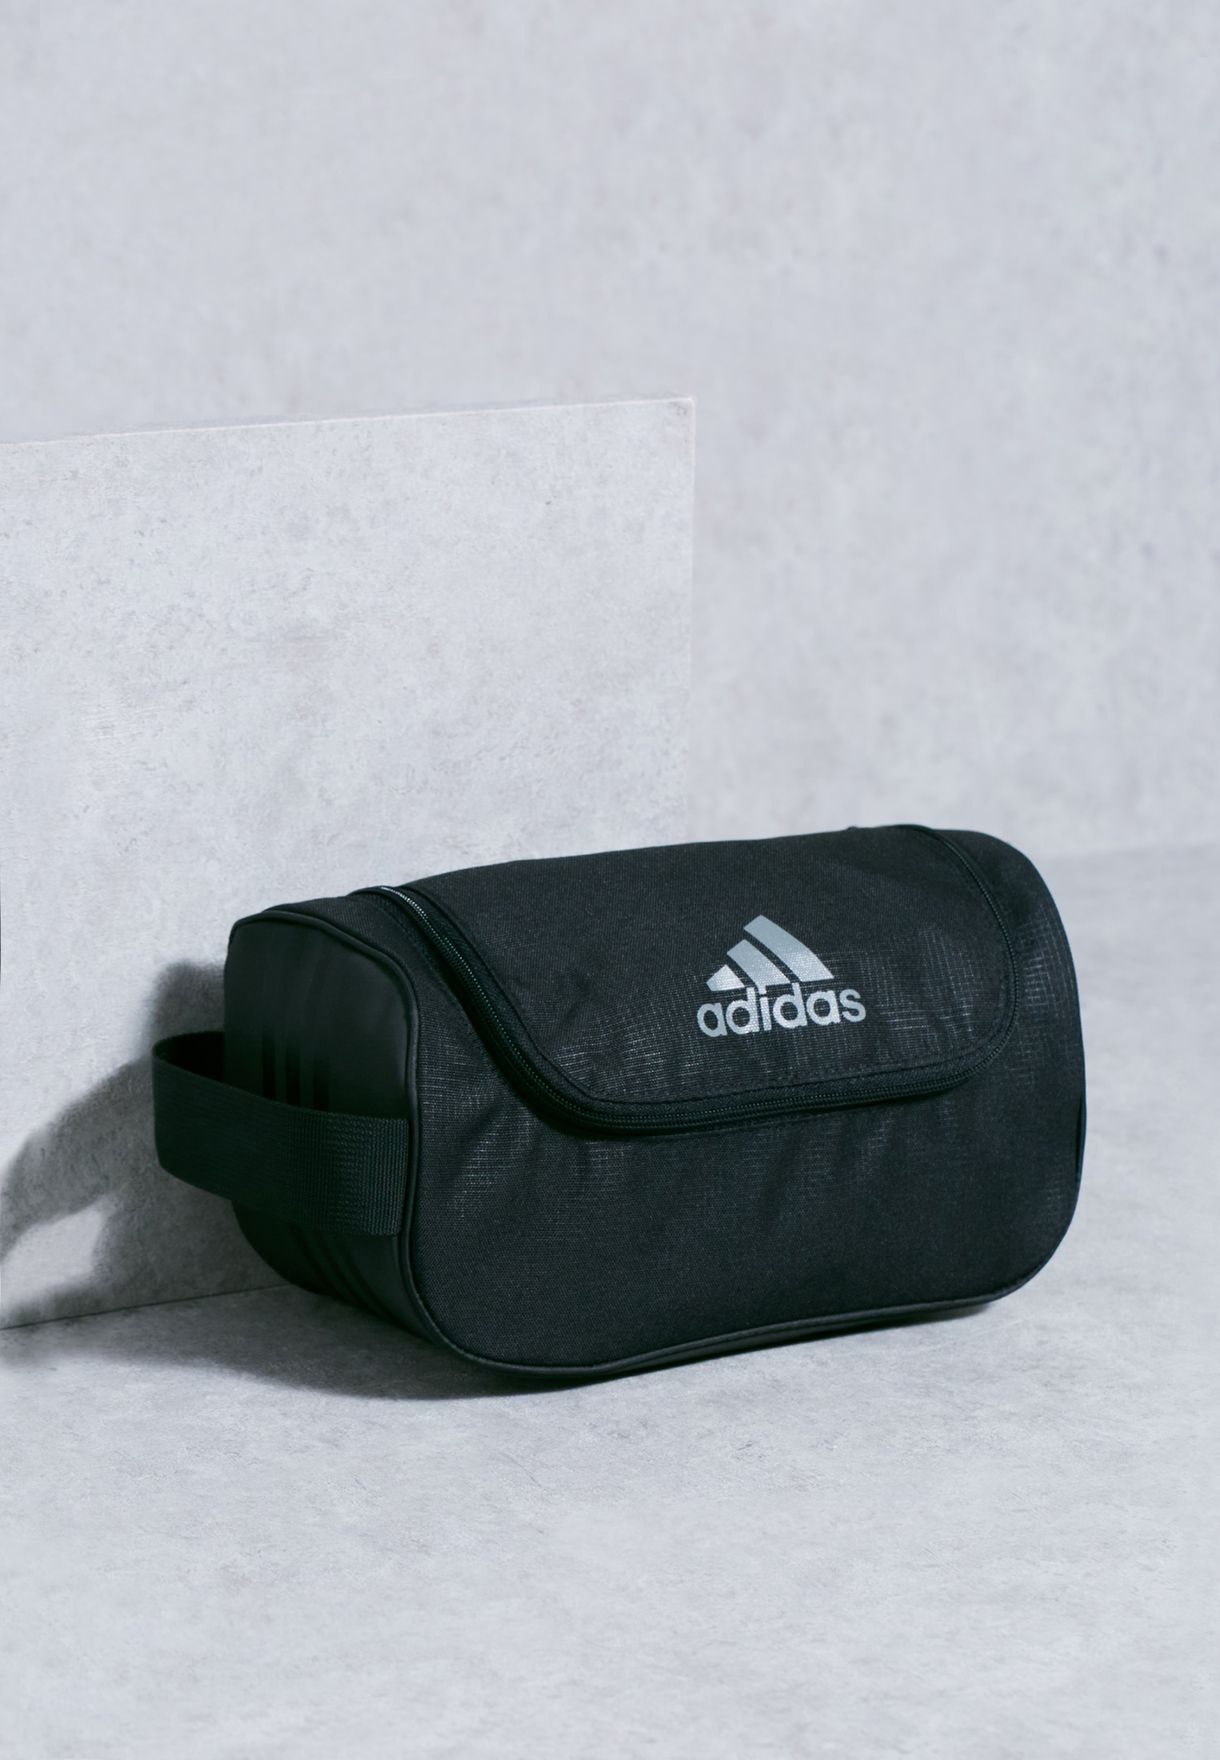 a19c29d5ffaa Shop adidas black 3 Stripe Toiletry Bag AK0021 for Men in Qatar -  AD476AC57PPA